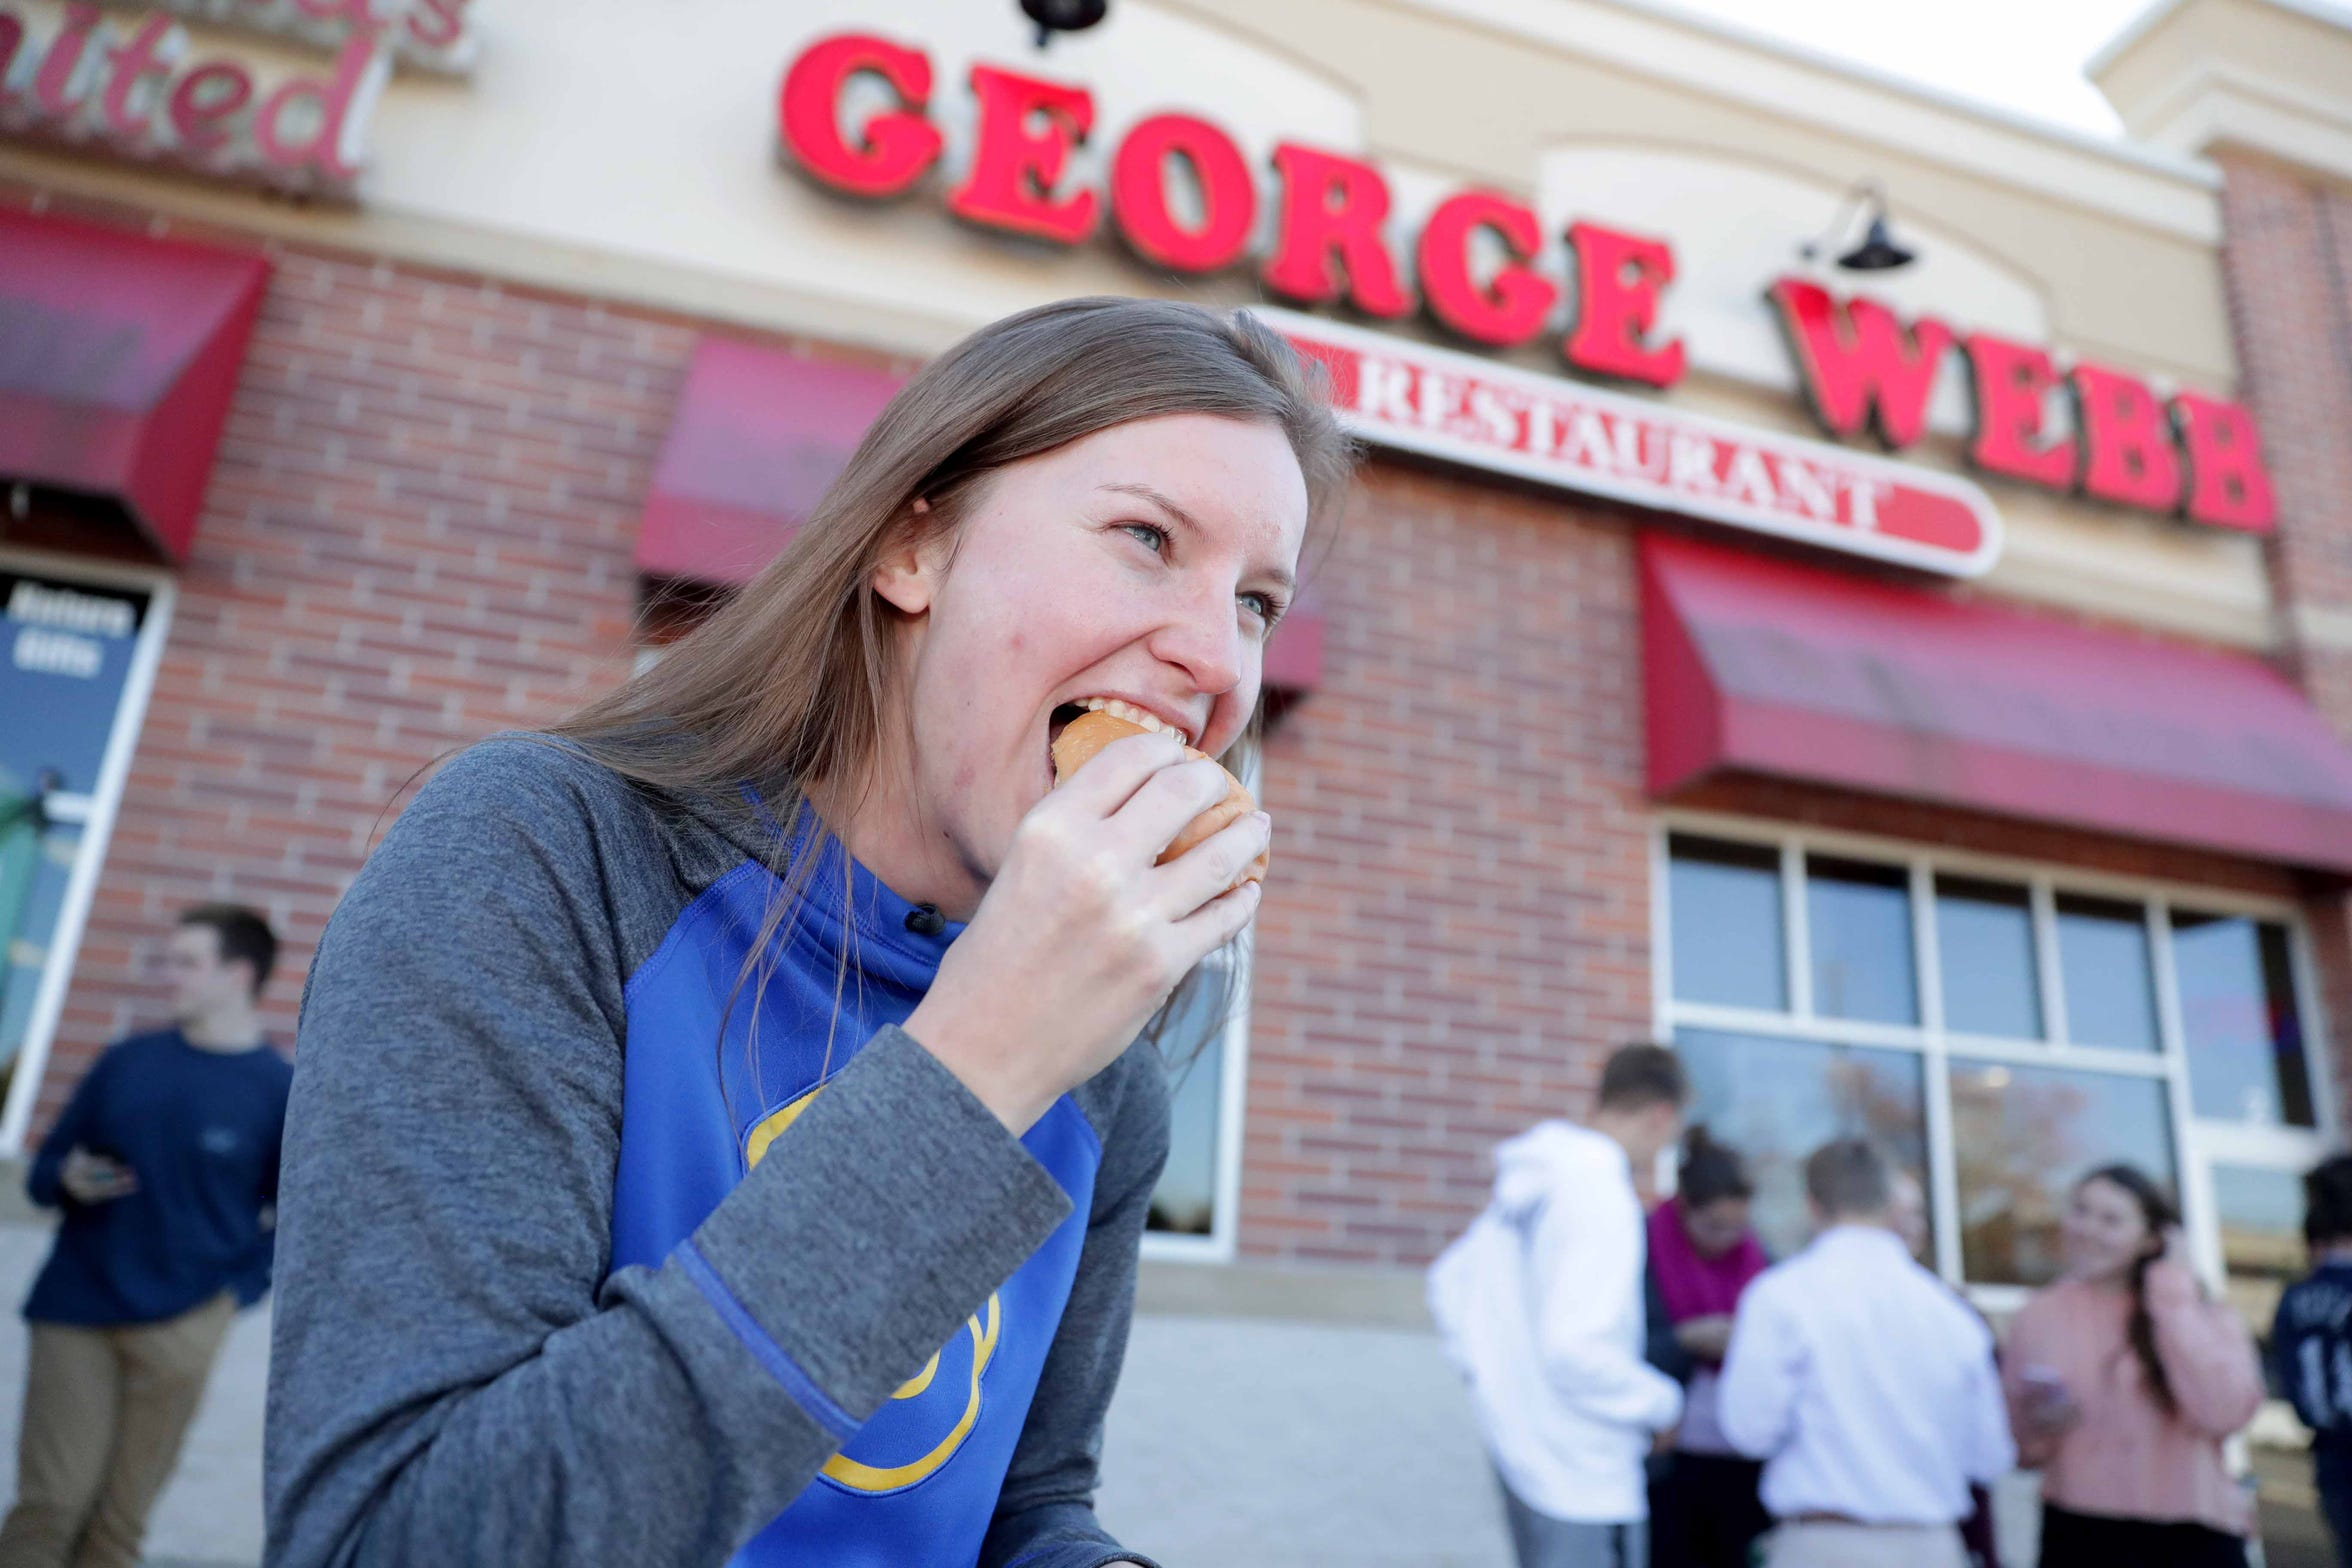 Lauren Wysocki of Pewaukee takes a bite out of her free hamburger at the George Webb Restaurant in Brookfield, where she was with her mother, Sandy Wysocki. George Webb Restaurants across the state handed out free hamburgers on Thursday, delivering on the promise it made if the Brewers won 12 games in a row. The restaurant allowed one burger per customer.